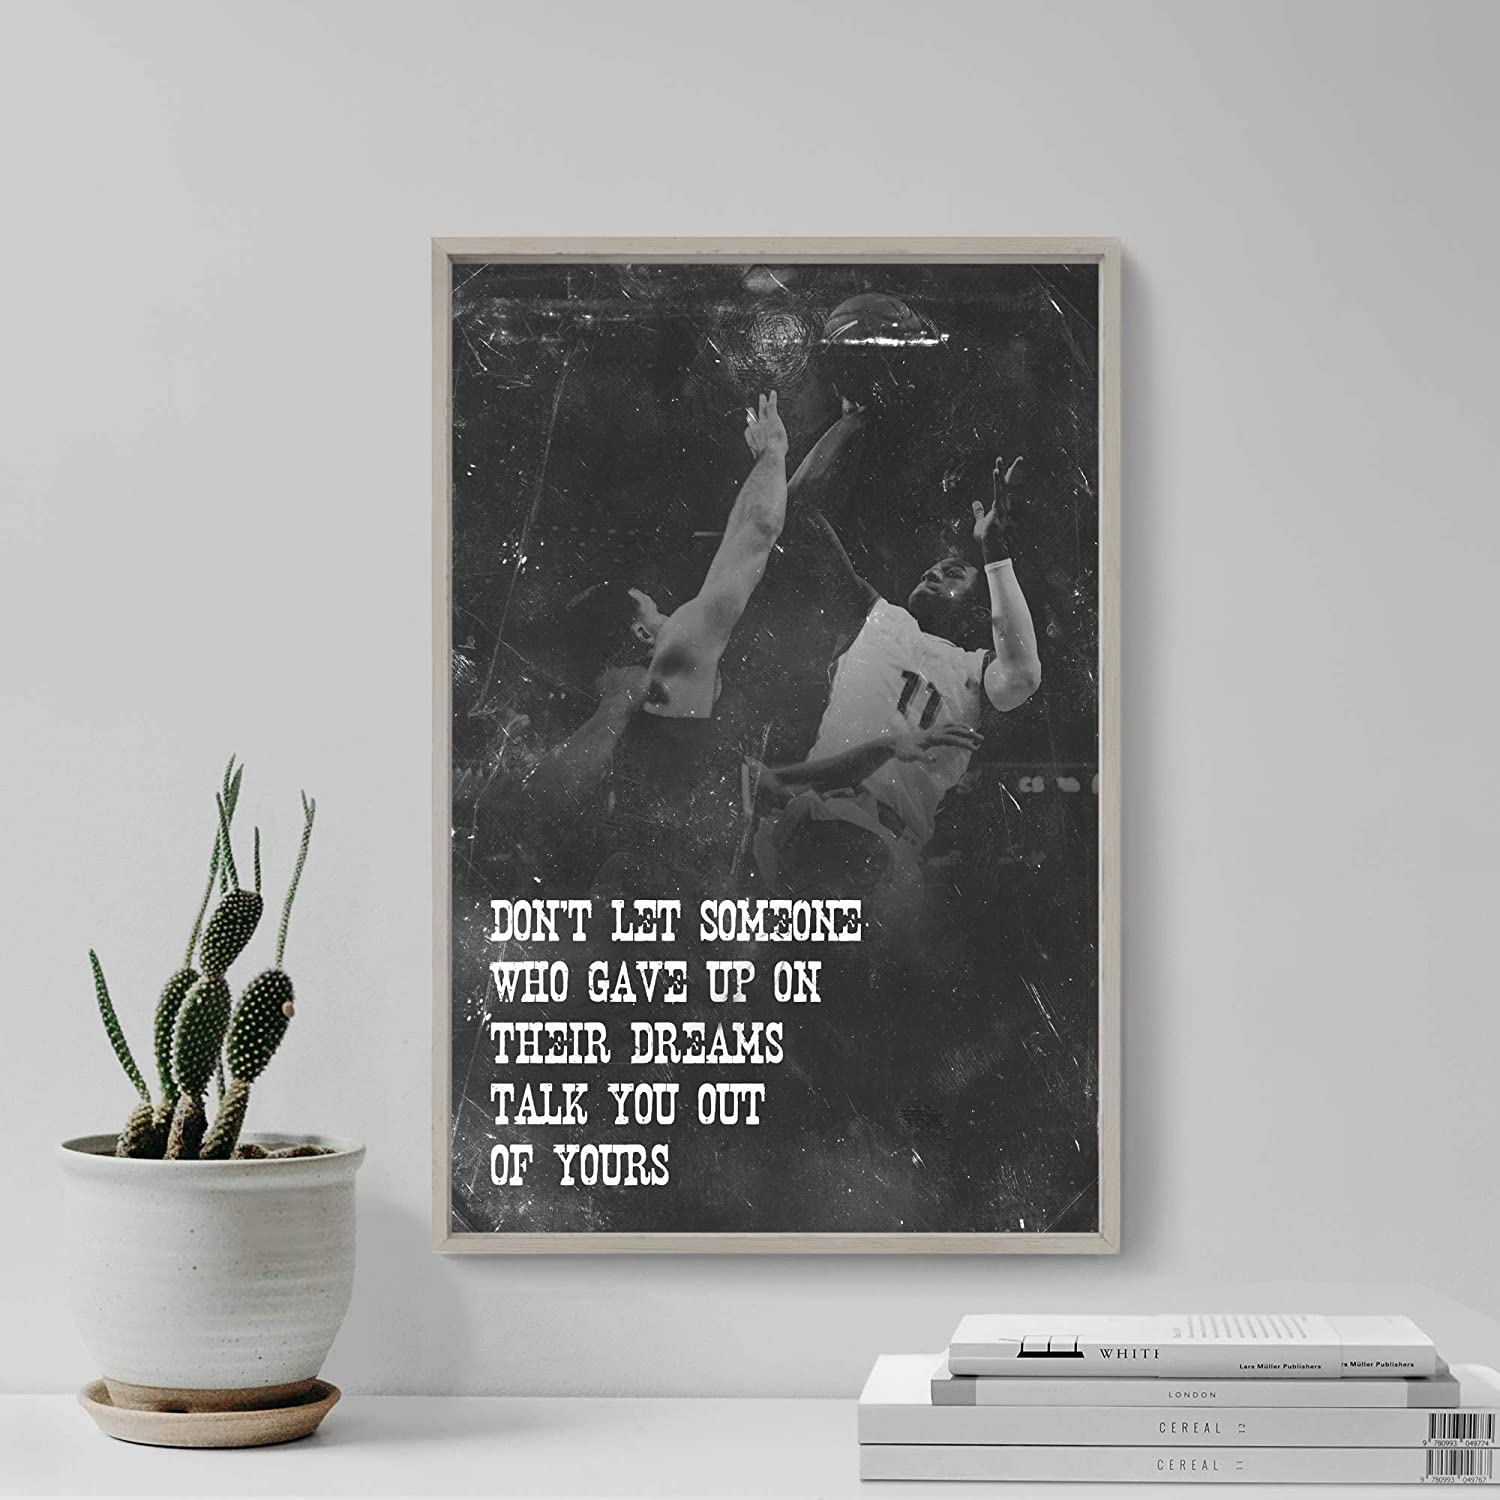 30 x 20 cm Size: 12 x 8 Inches //// TPCK //// Basketball Motivational Poster 05Dont let someone Photo Print Art Motivation Quote Gift B ball